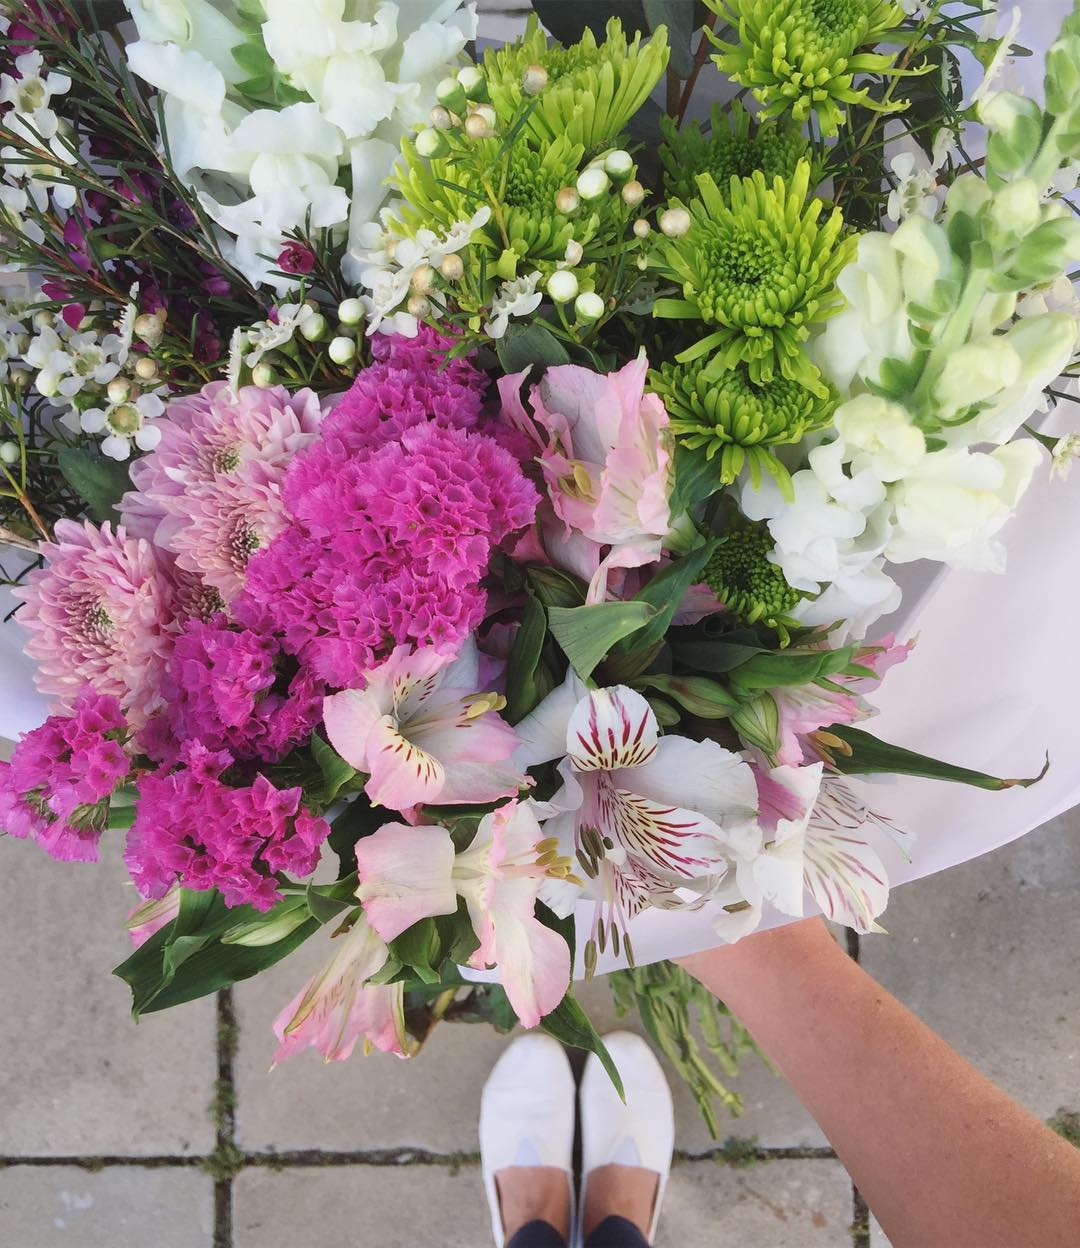 Today's Posy is layered with rich colours and textures ?The Posy includes alstroemerias in light pinks and soft whites, with wax, statice, green and dusty pink sprays, snapdragons and penny gum. Order before 12:30pm for delivery this afternoon, at www.petalandpost.co.za